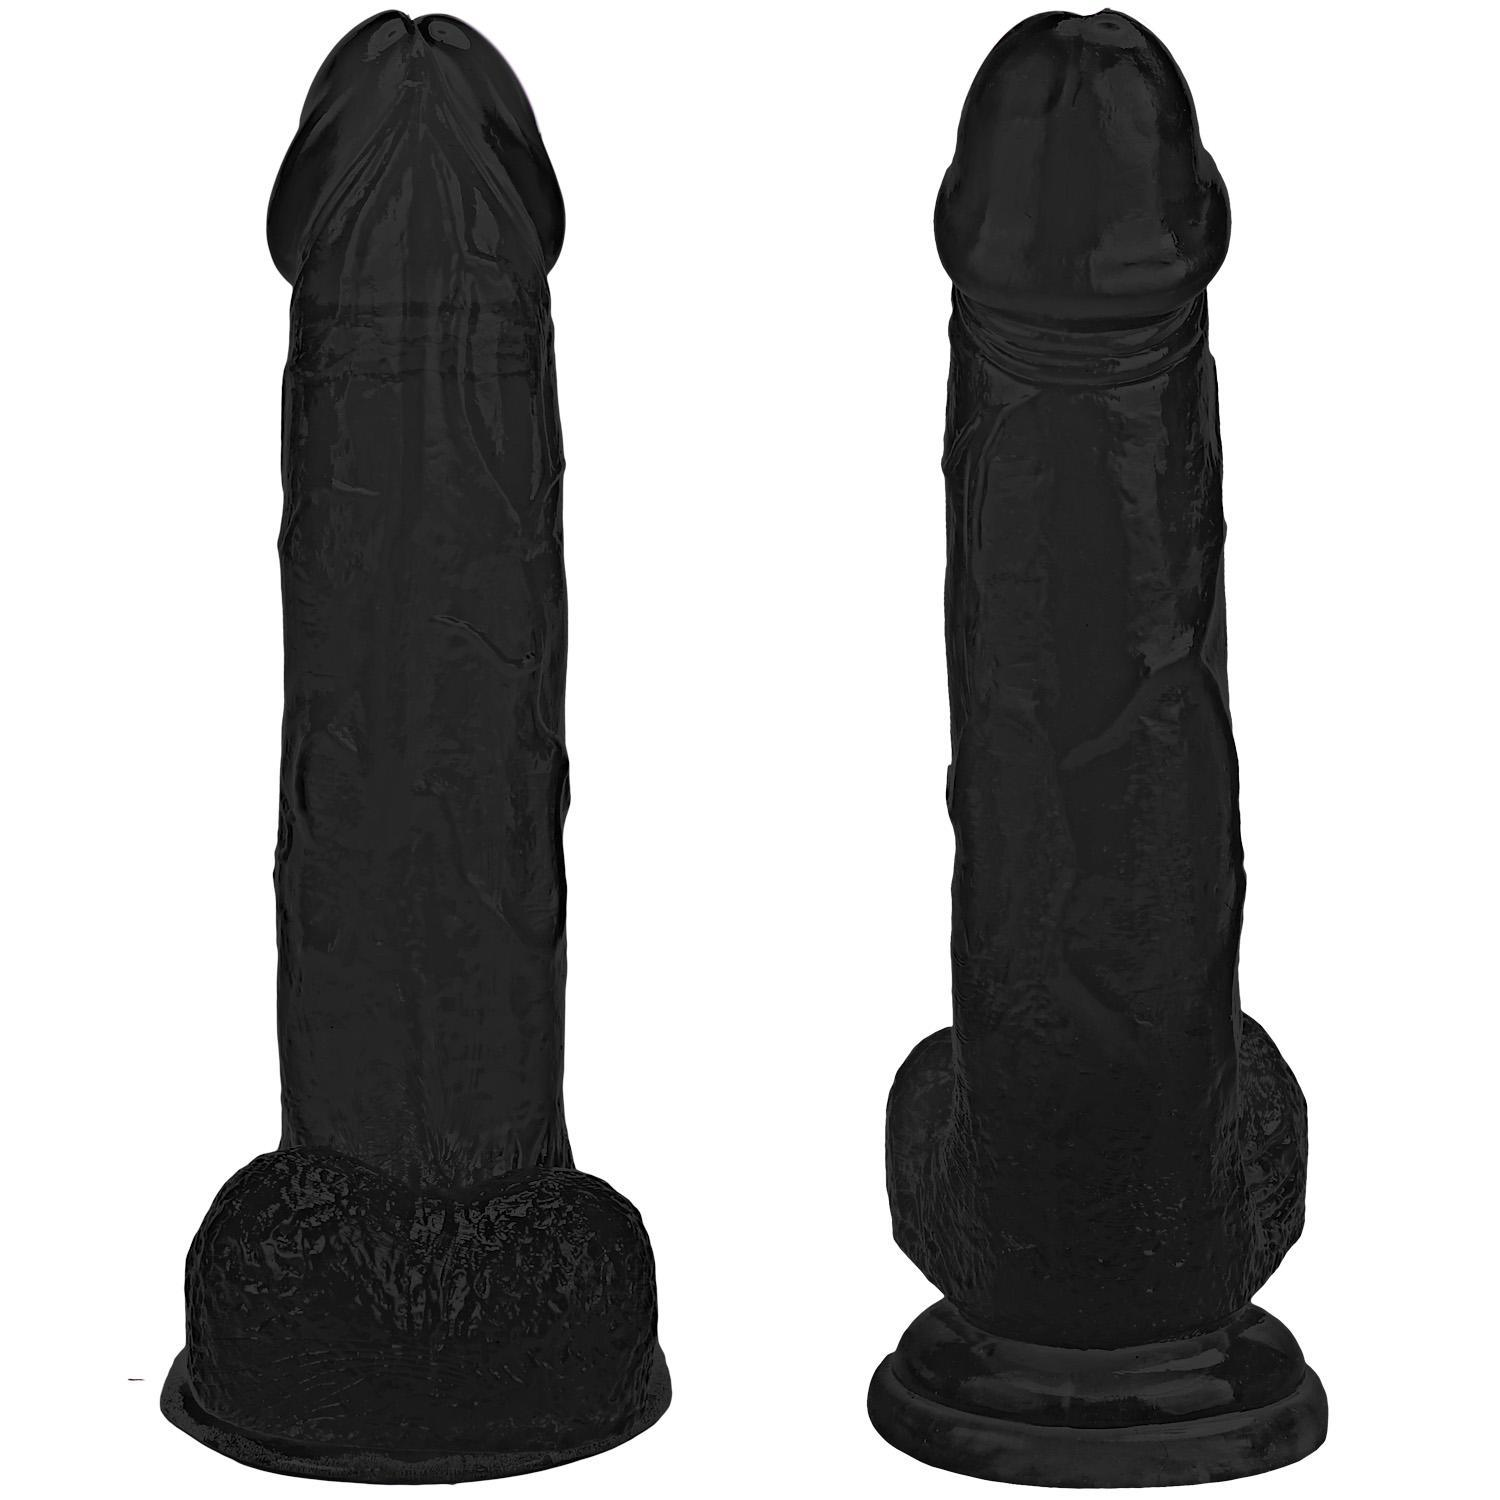 Large Size Huge Dildo with Suction Cup G-Spot Stimulation Sex Toys Adult Product 1